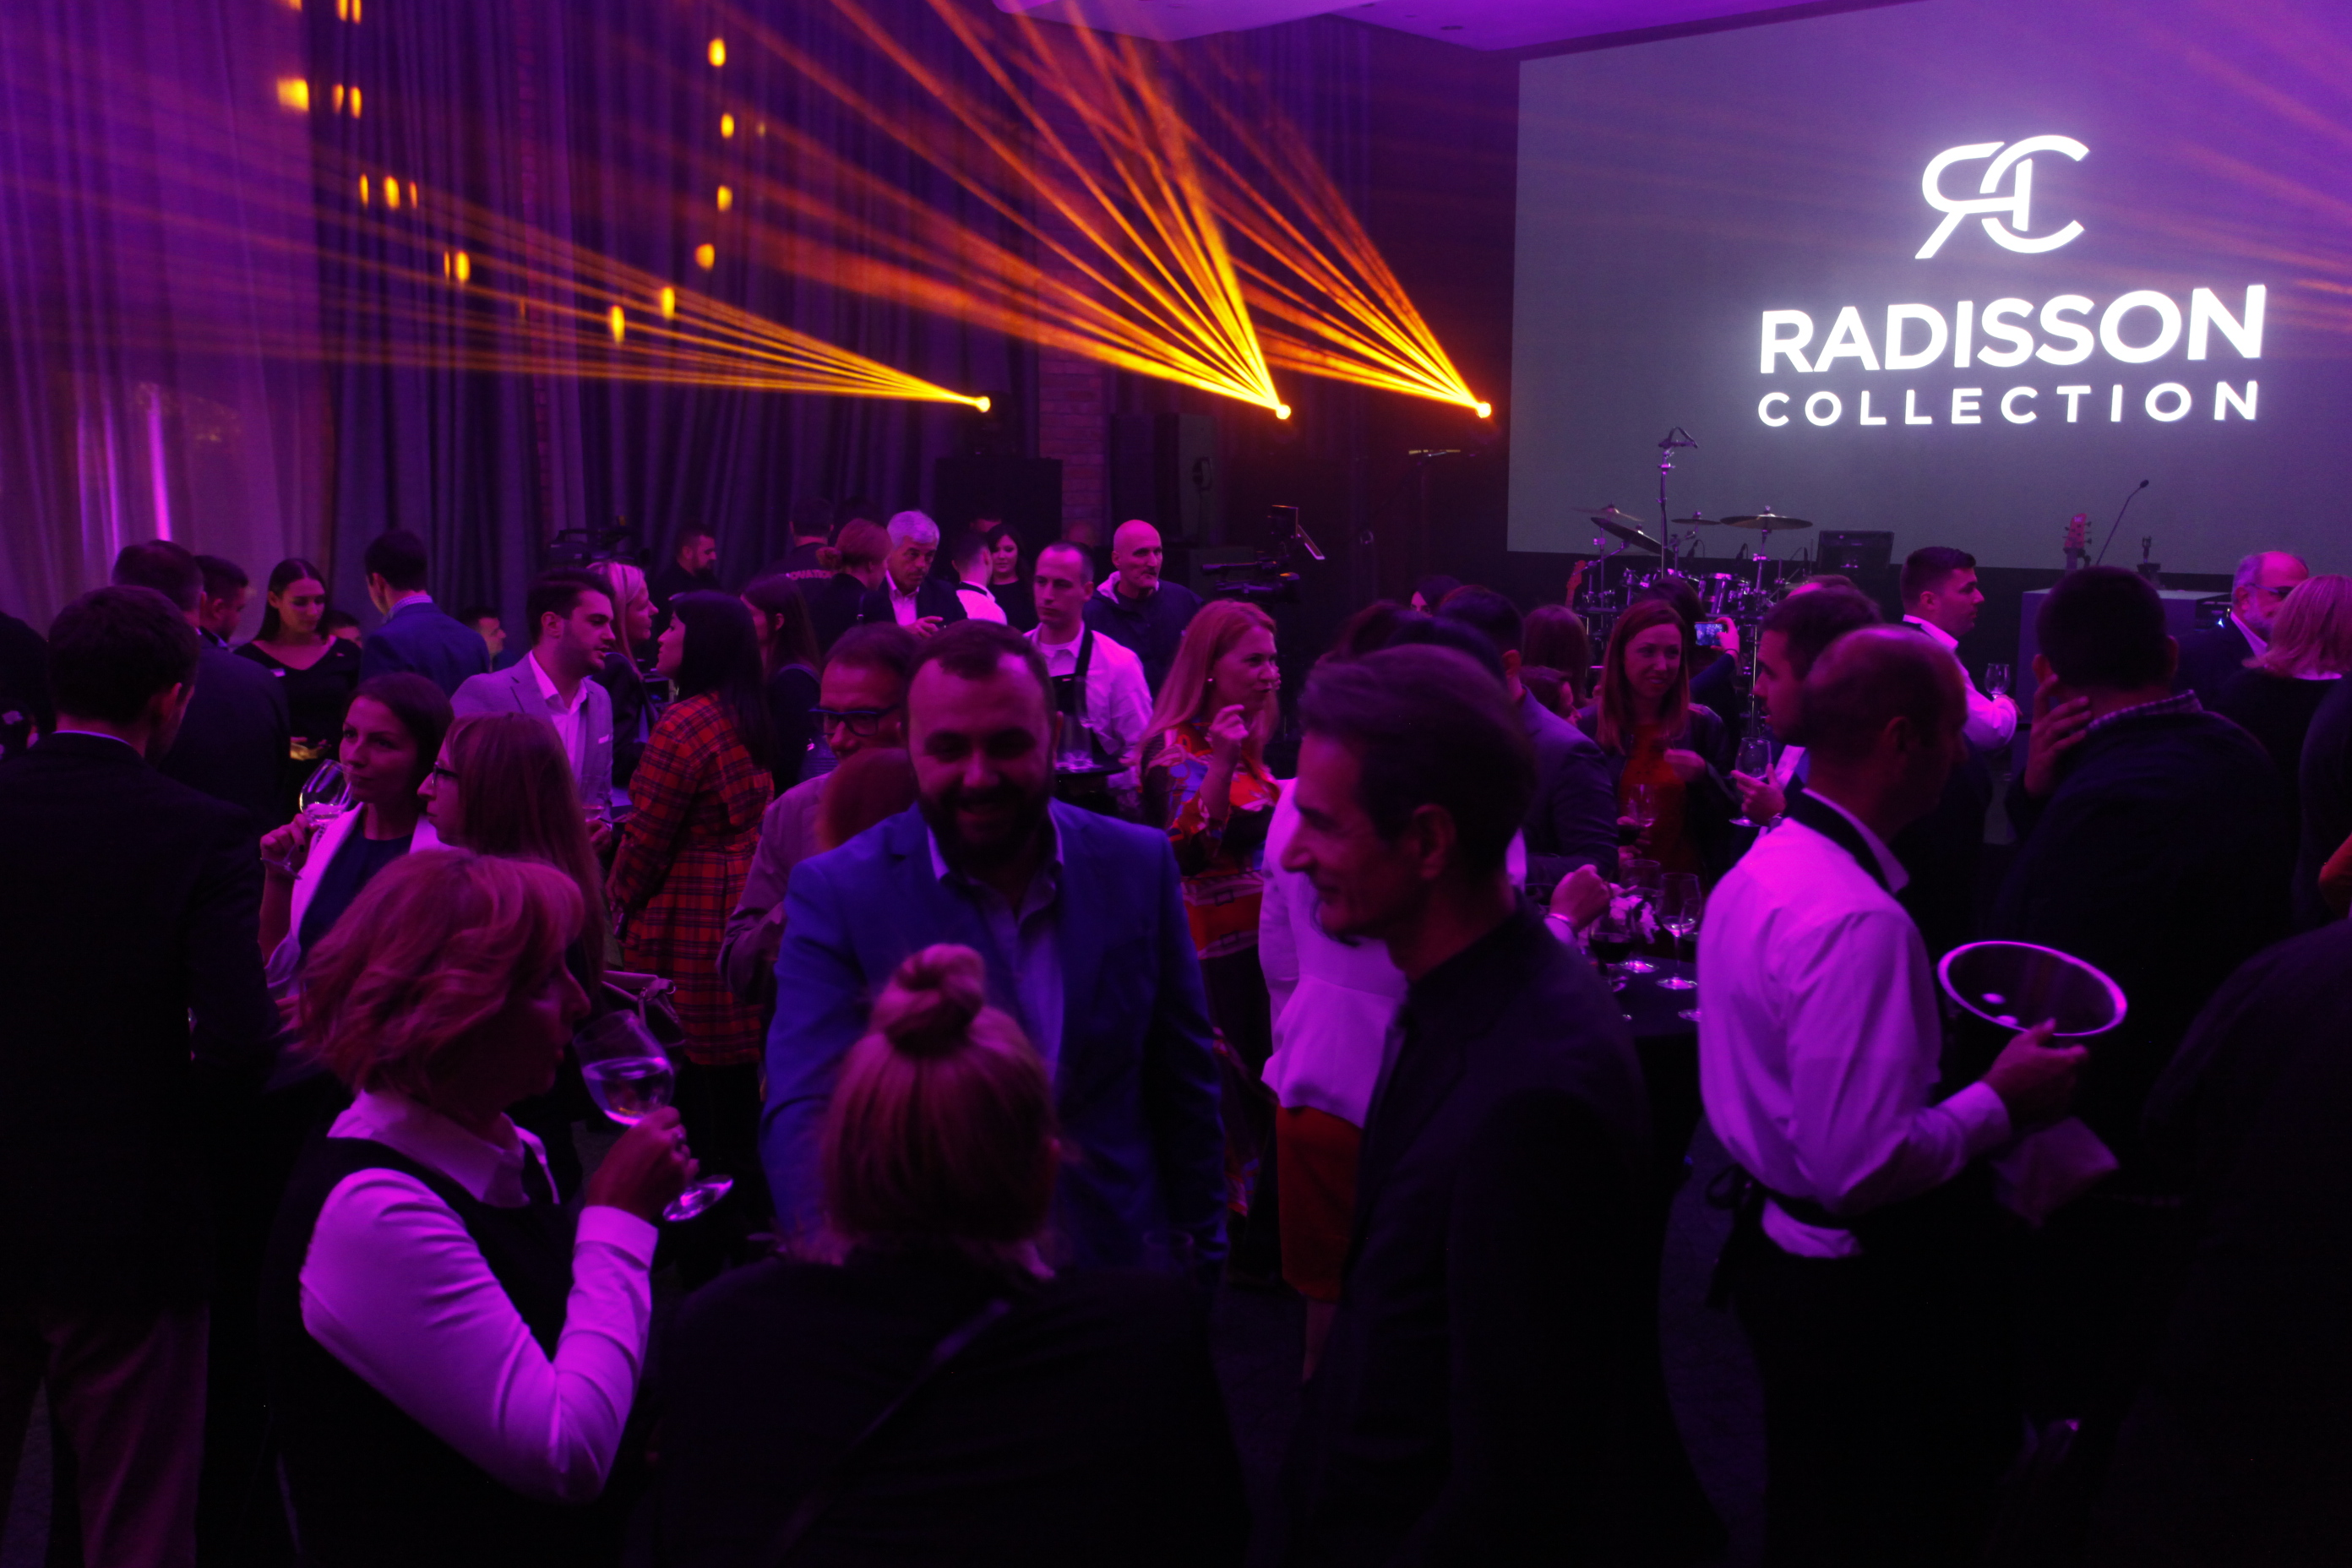 04 Radisson Collection Party Beograd na listi najeksluzivnijih svetskih destinacija